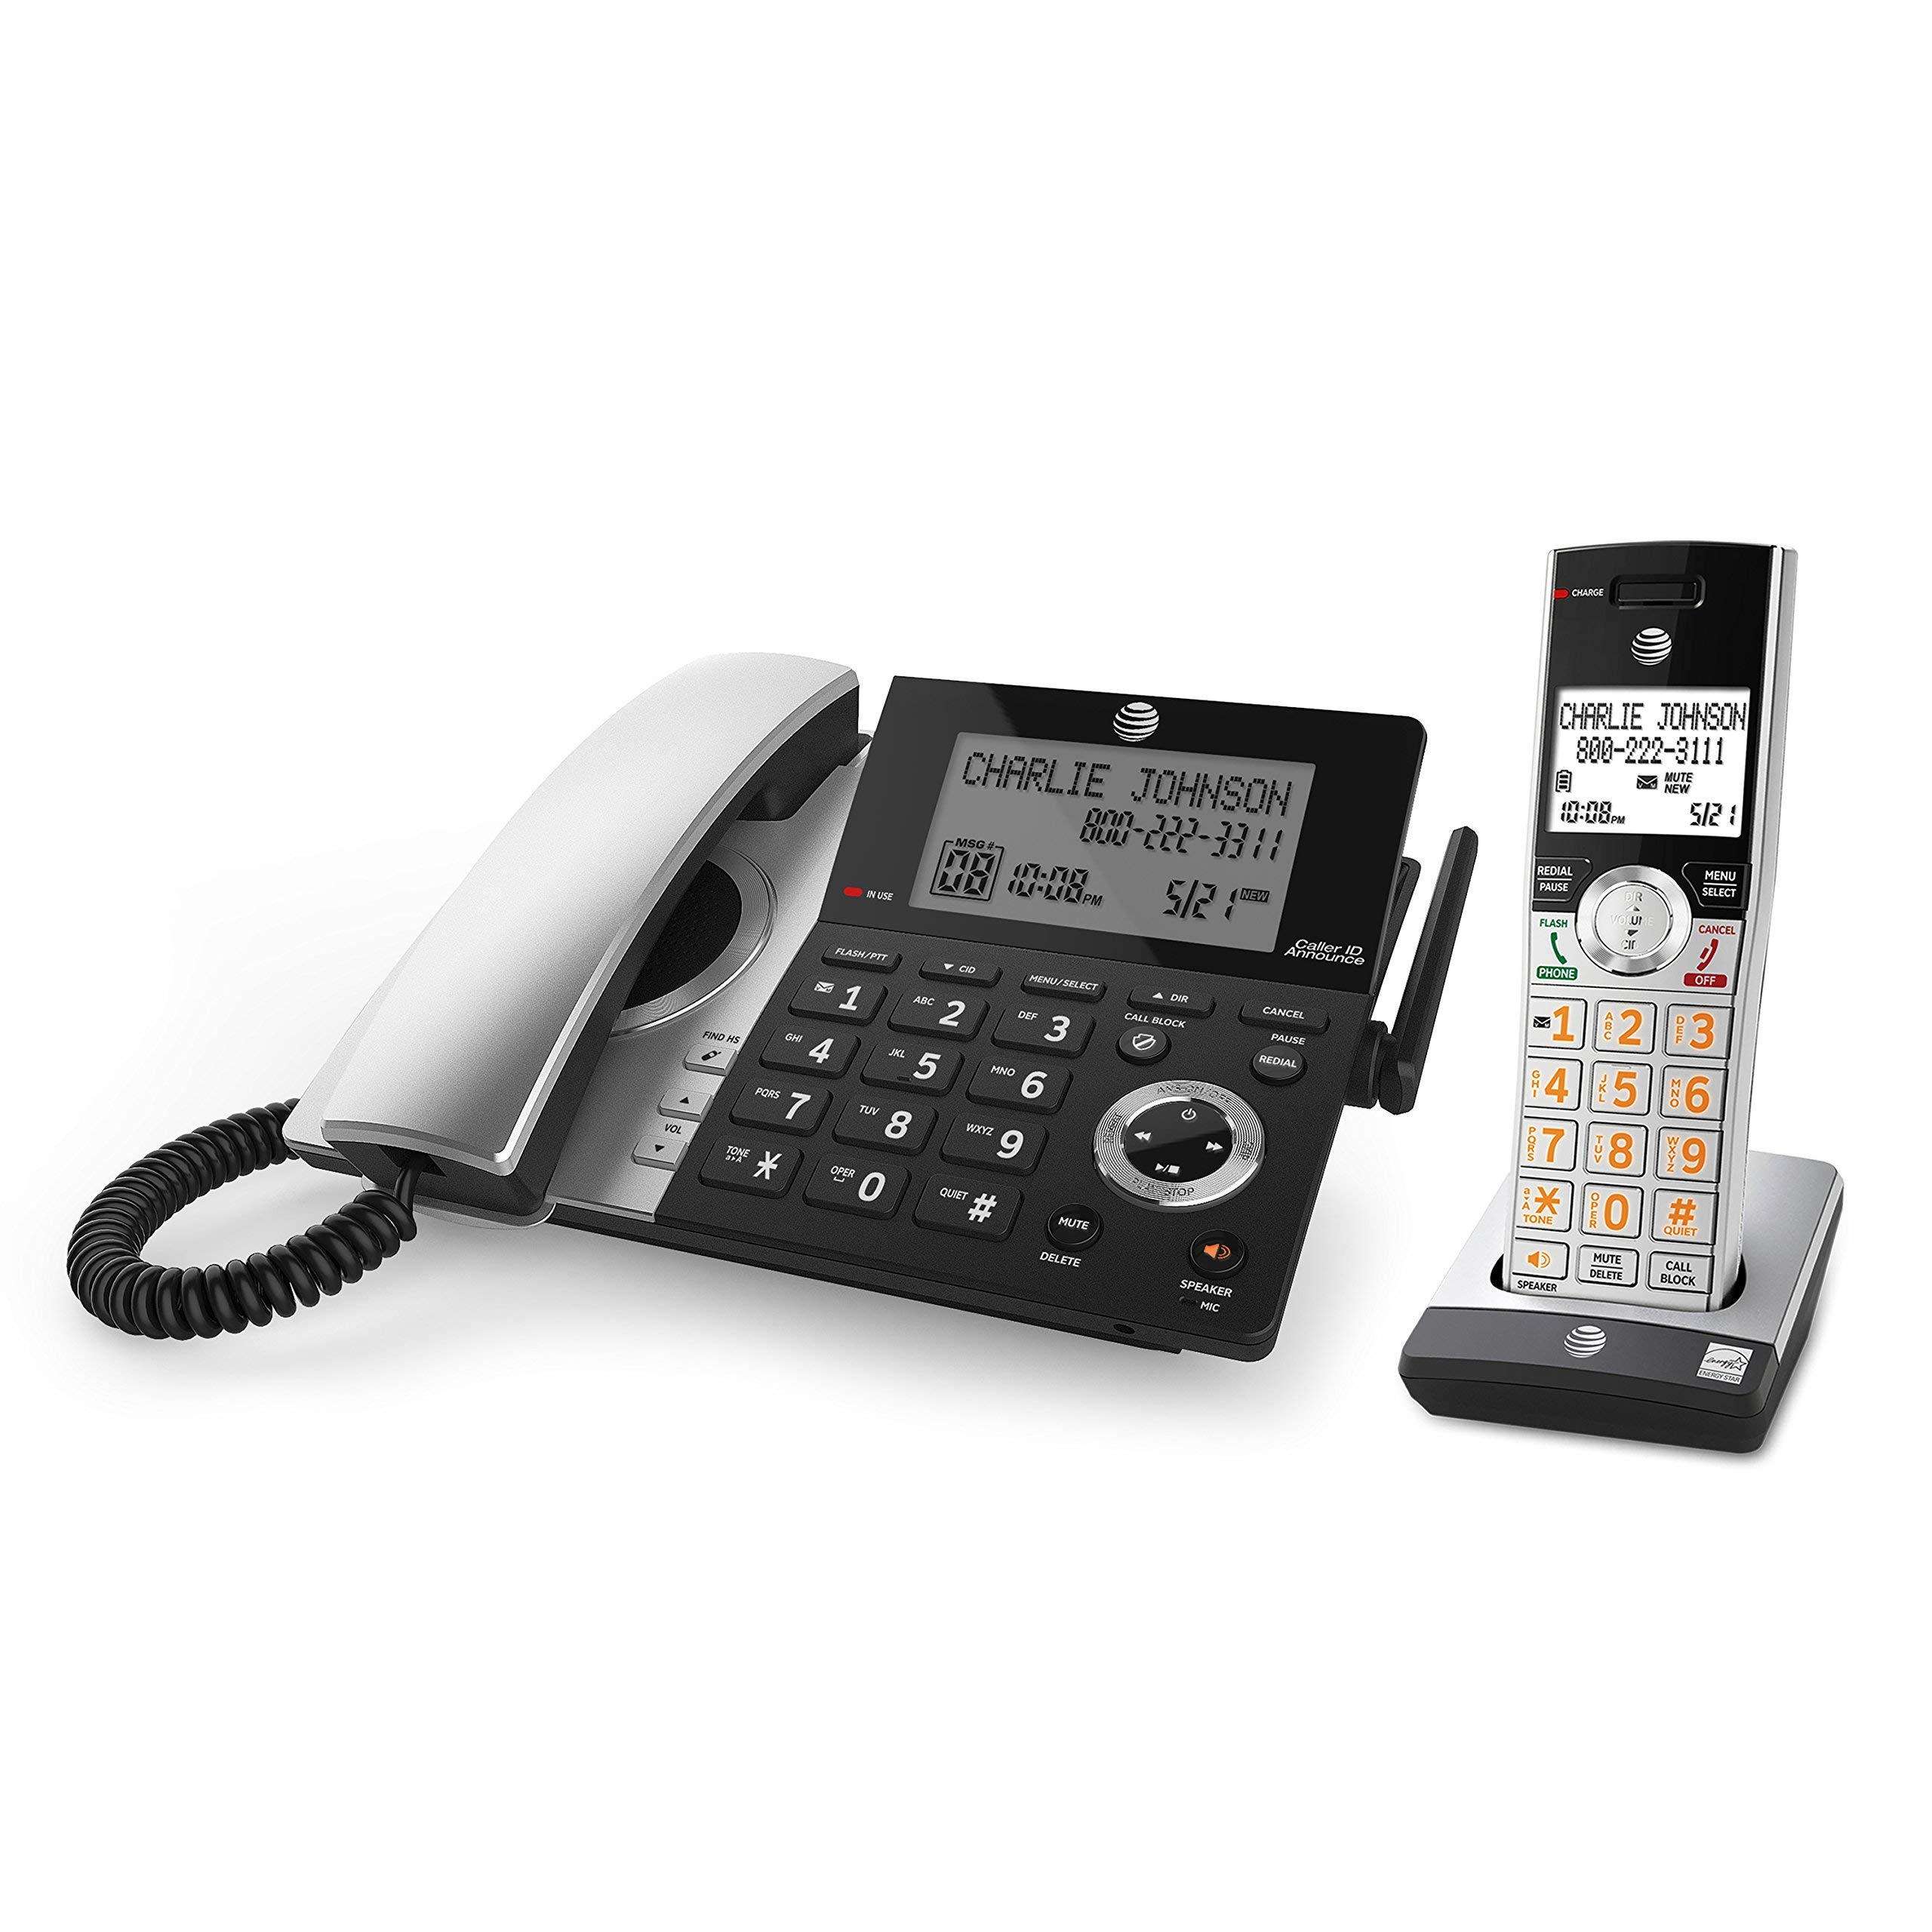 AT&T CL84107 DECT 6.0 Expandable Corded/Cordless Phone with Smart Call Blocker, Black/Silver with 1 Handset (Renewed) by AT&T (Image #3)